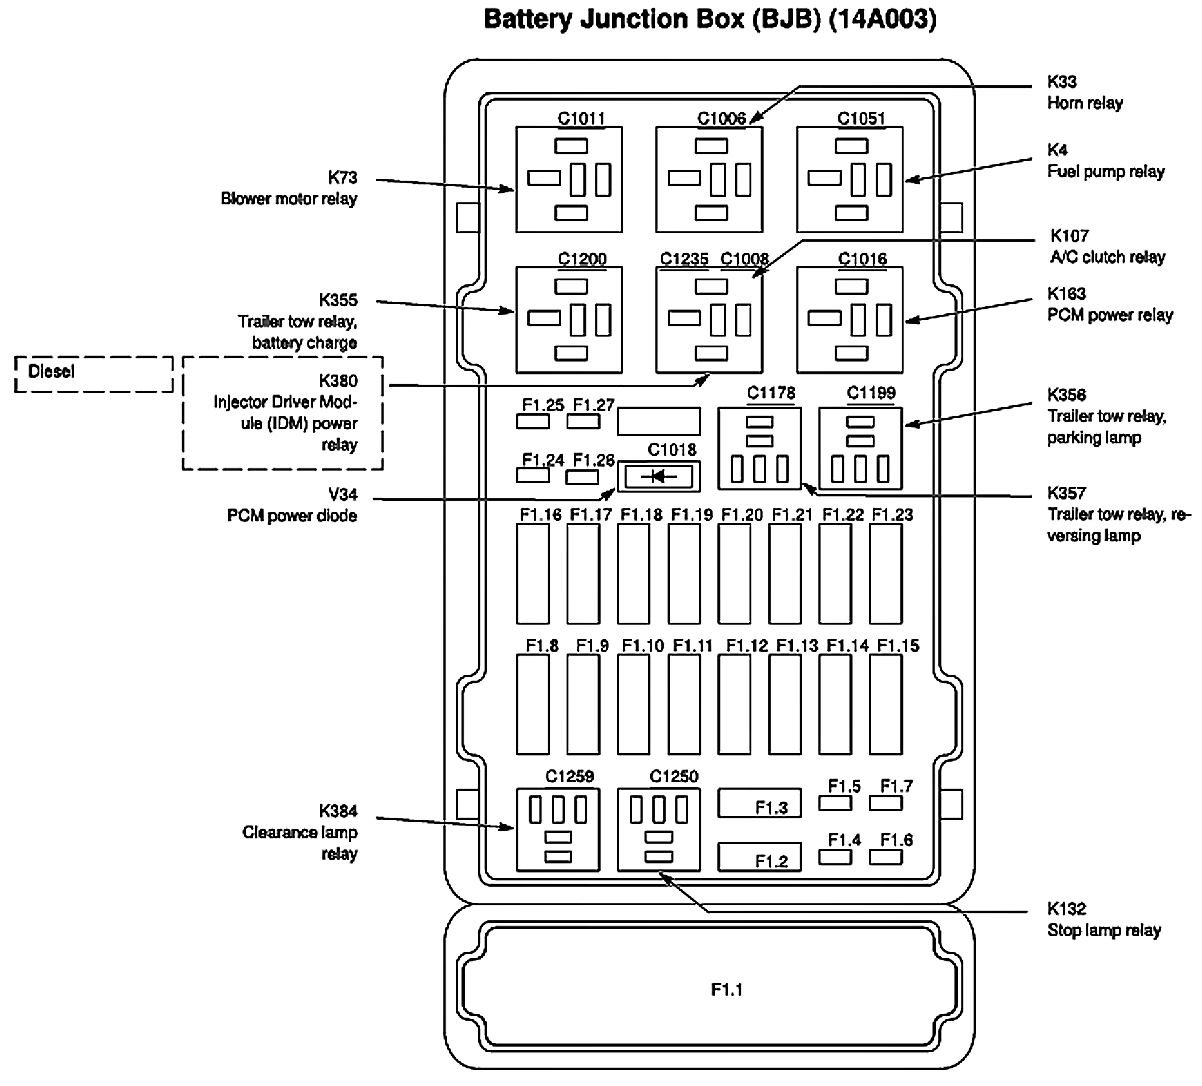 2003 e150 cargo van fuse box diagram